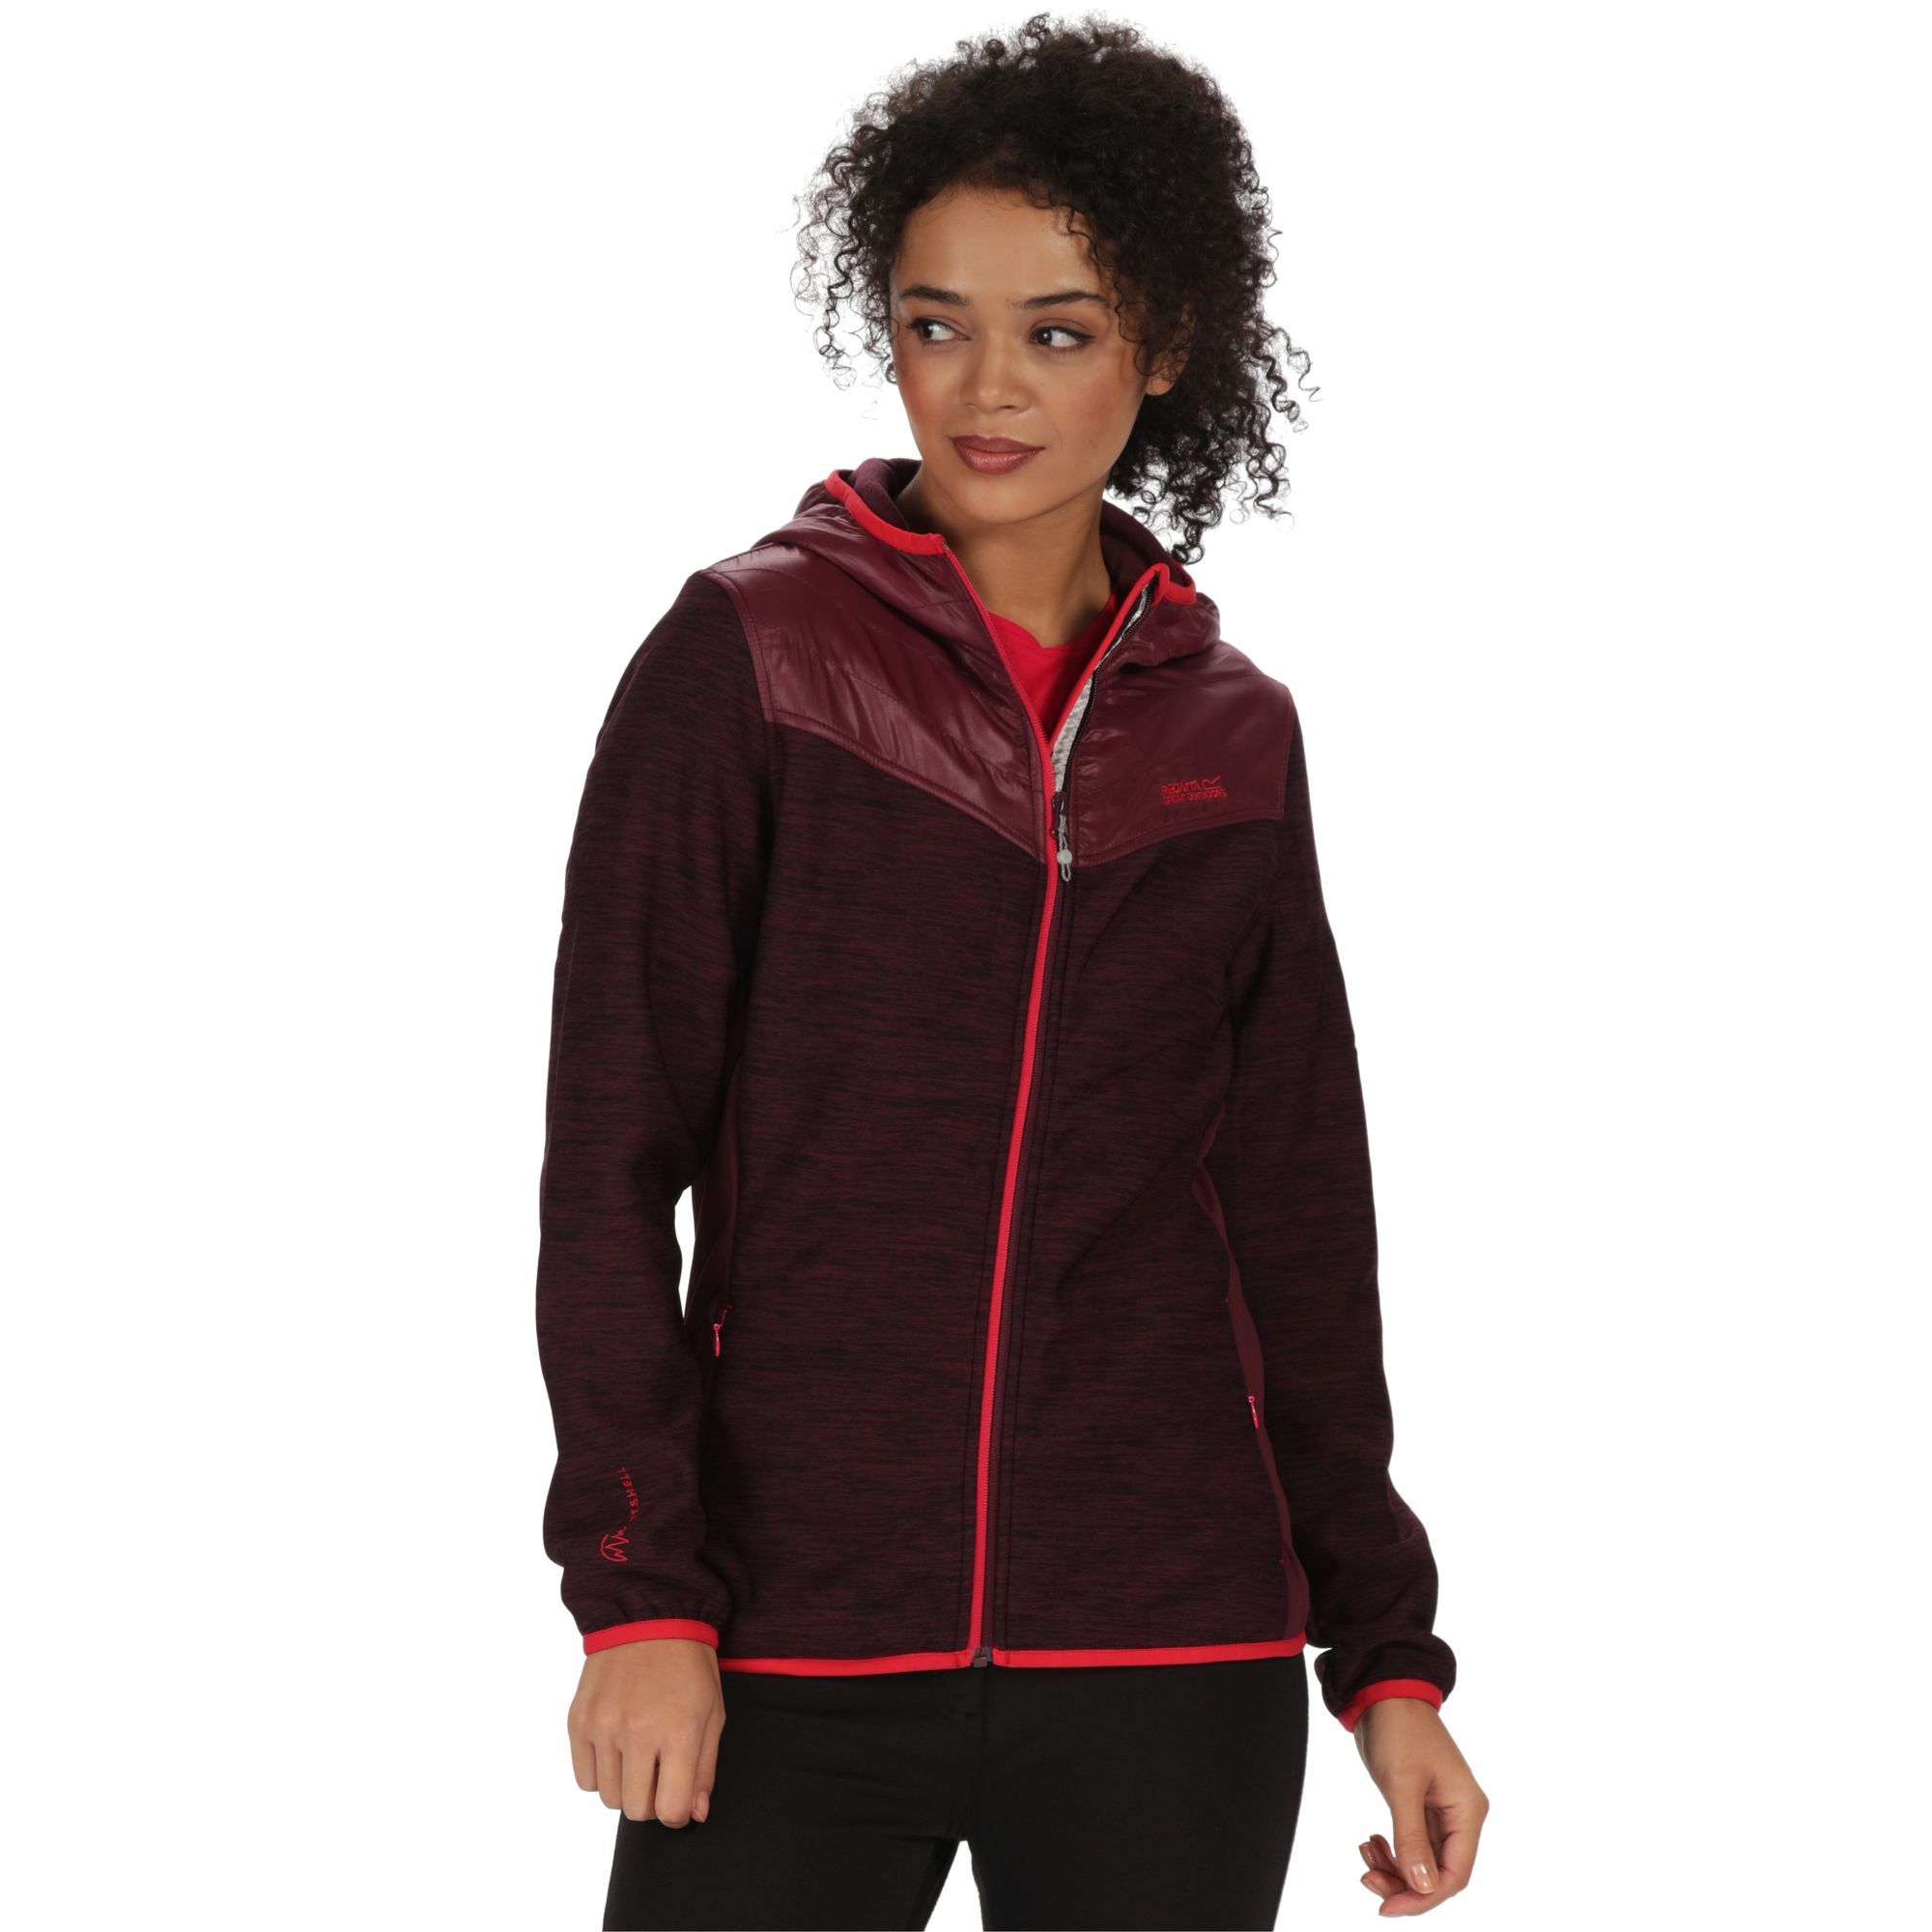 84c6edaf7fd regatta-womens-harra-hybrid-stretch-wind-resistant-softshell-jacket-fig.jpg